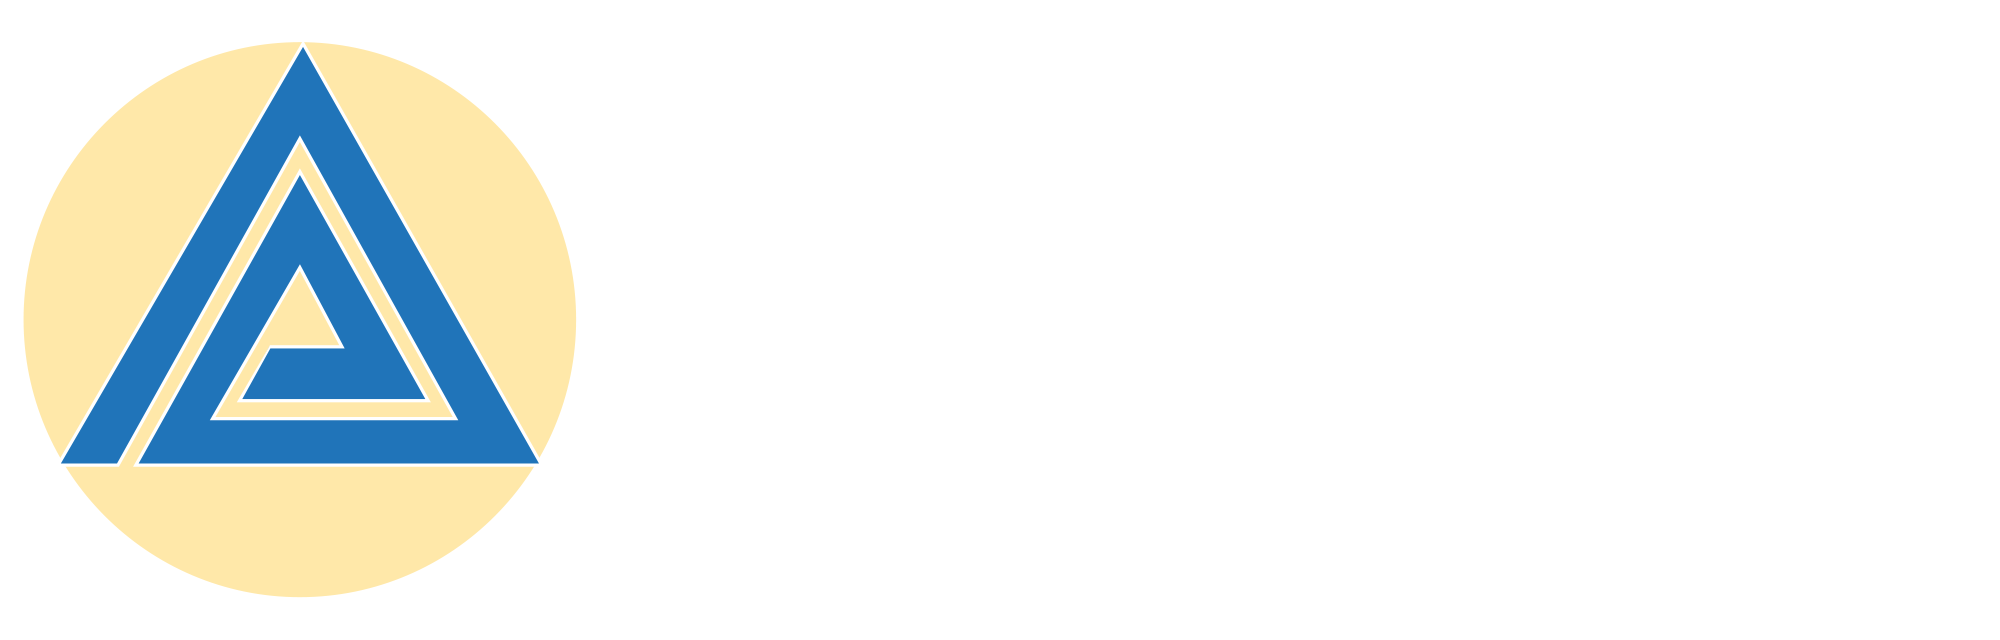 Forth-Gere Home Inspection